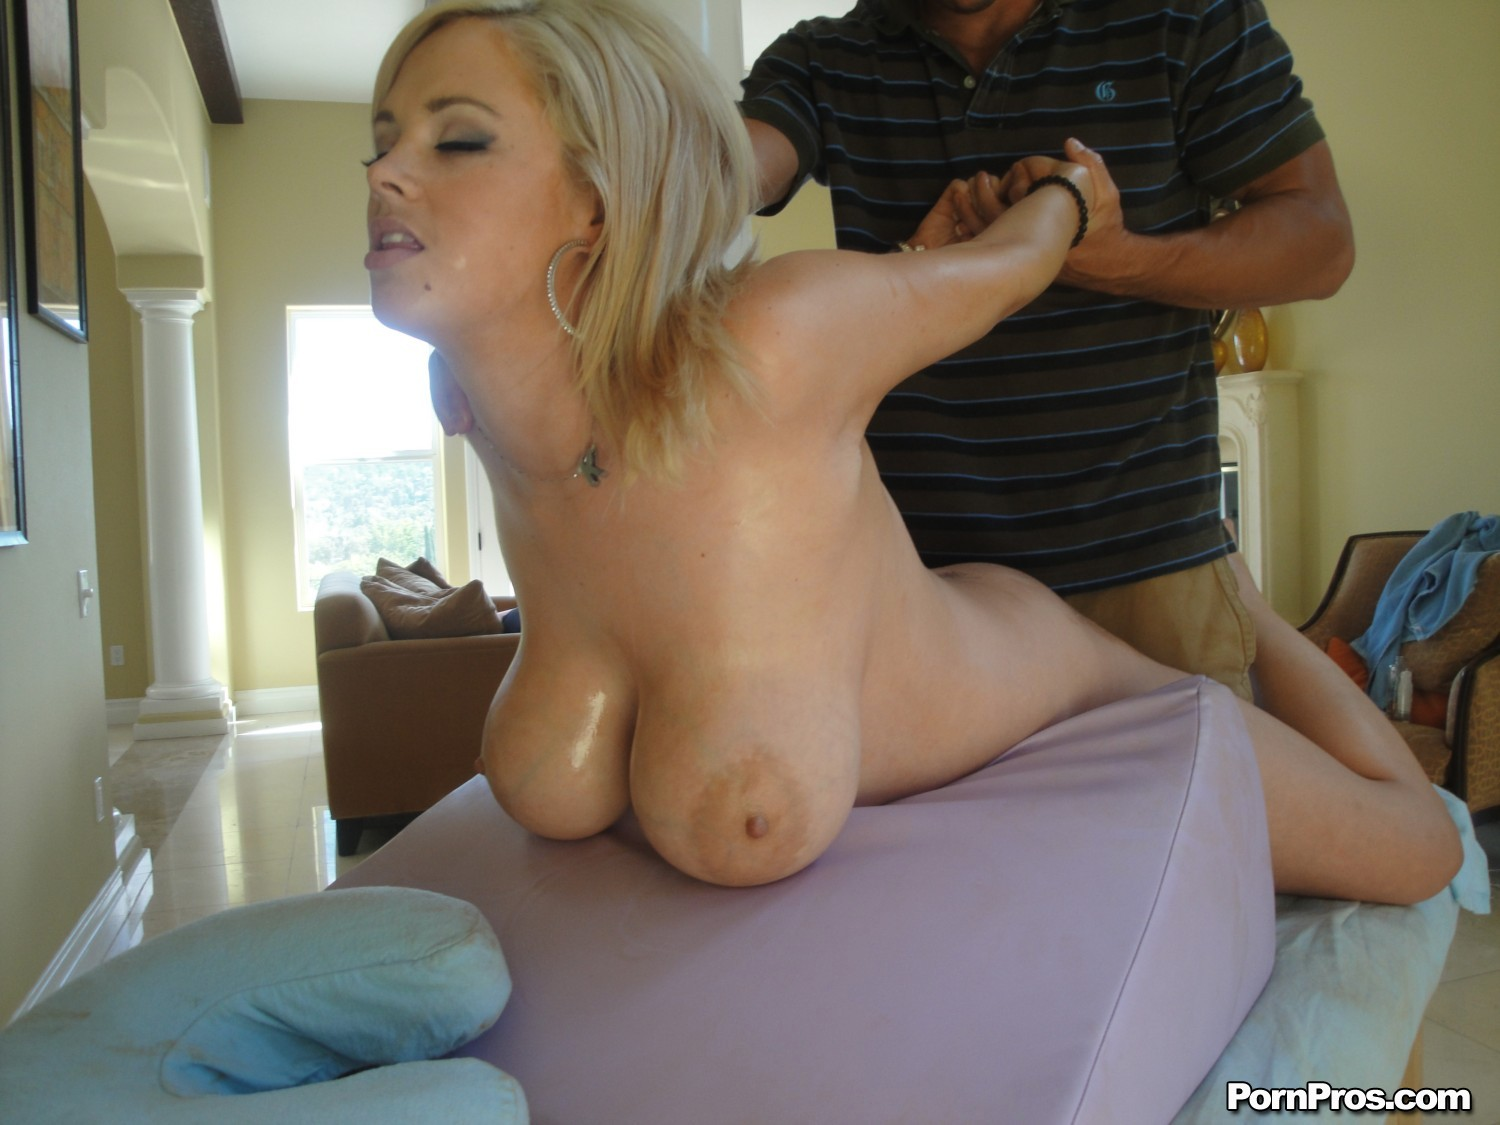 http://images.galleries.pornpros.com/galleries.massagecreep.com/htdocs/pb03/pb03_kathycox/full/08.jpg